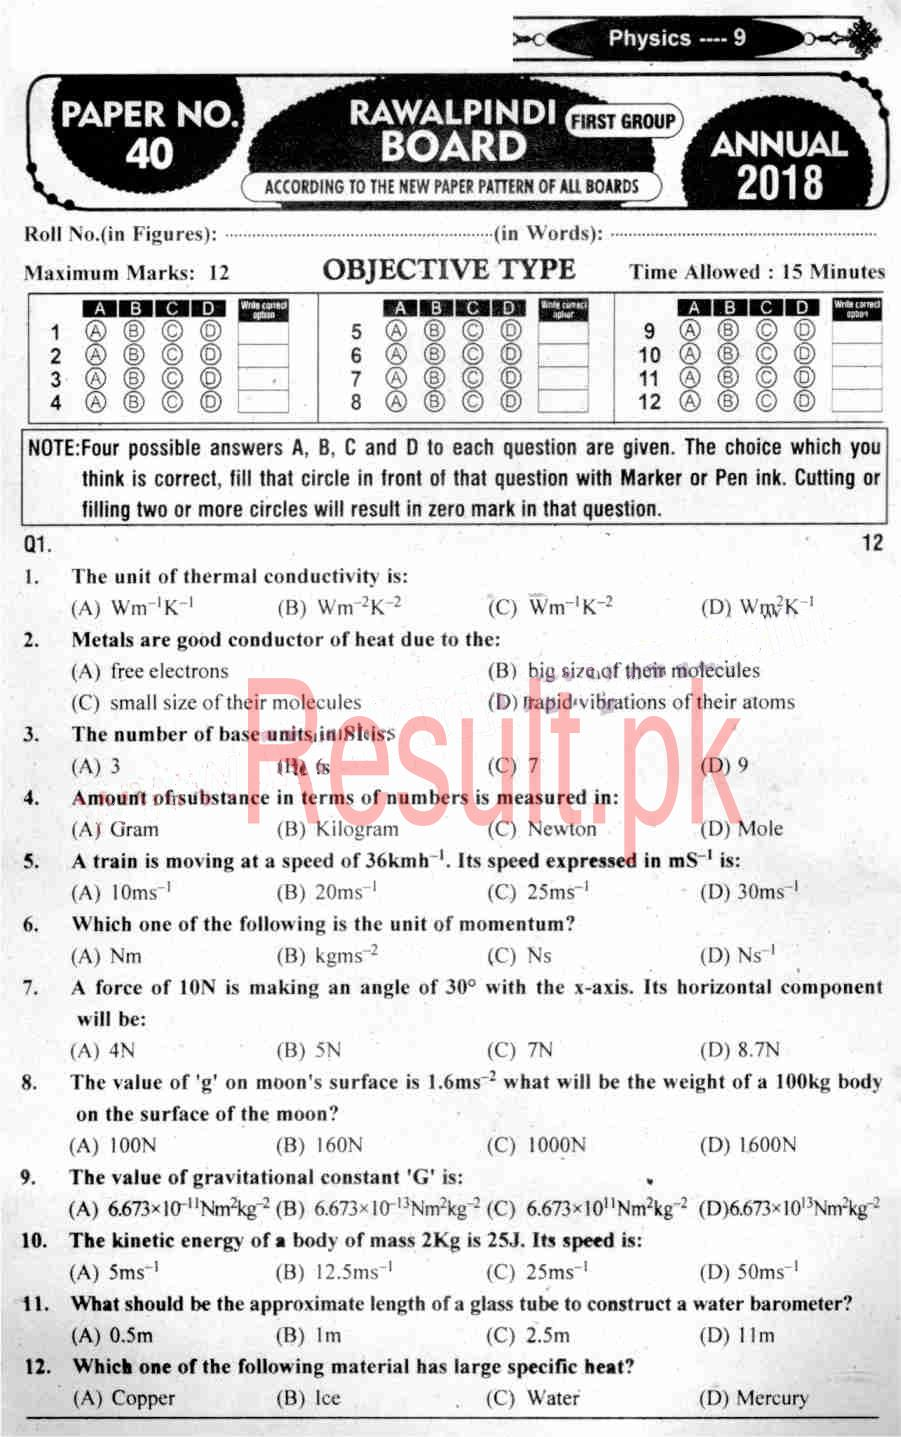 BISE Rawalpindi Board Past Papers 2019 Matric, SSC Part 1